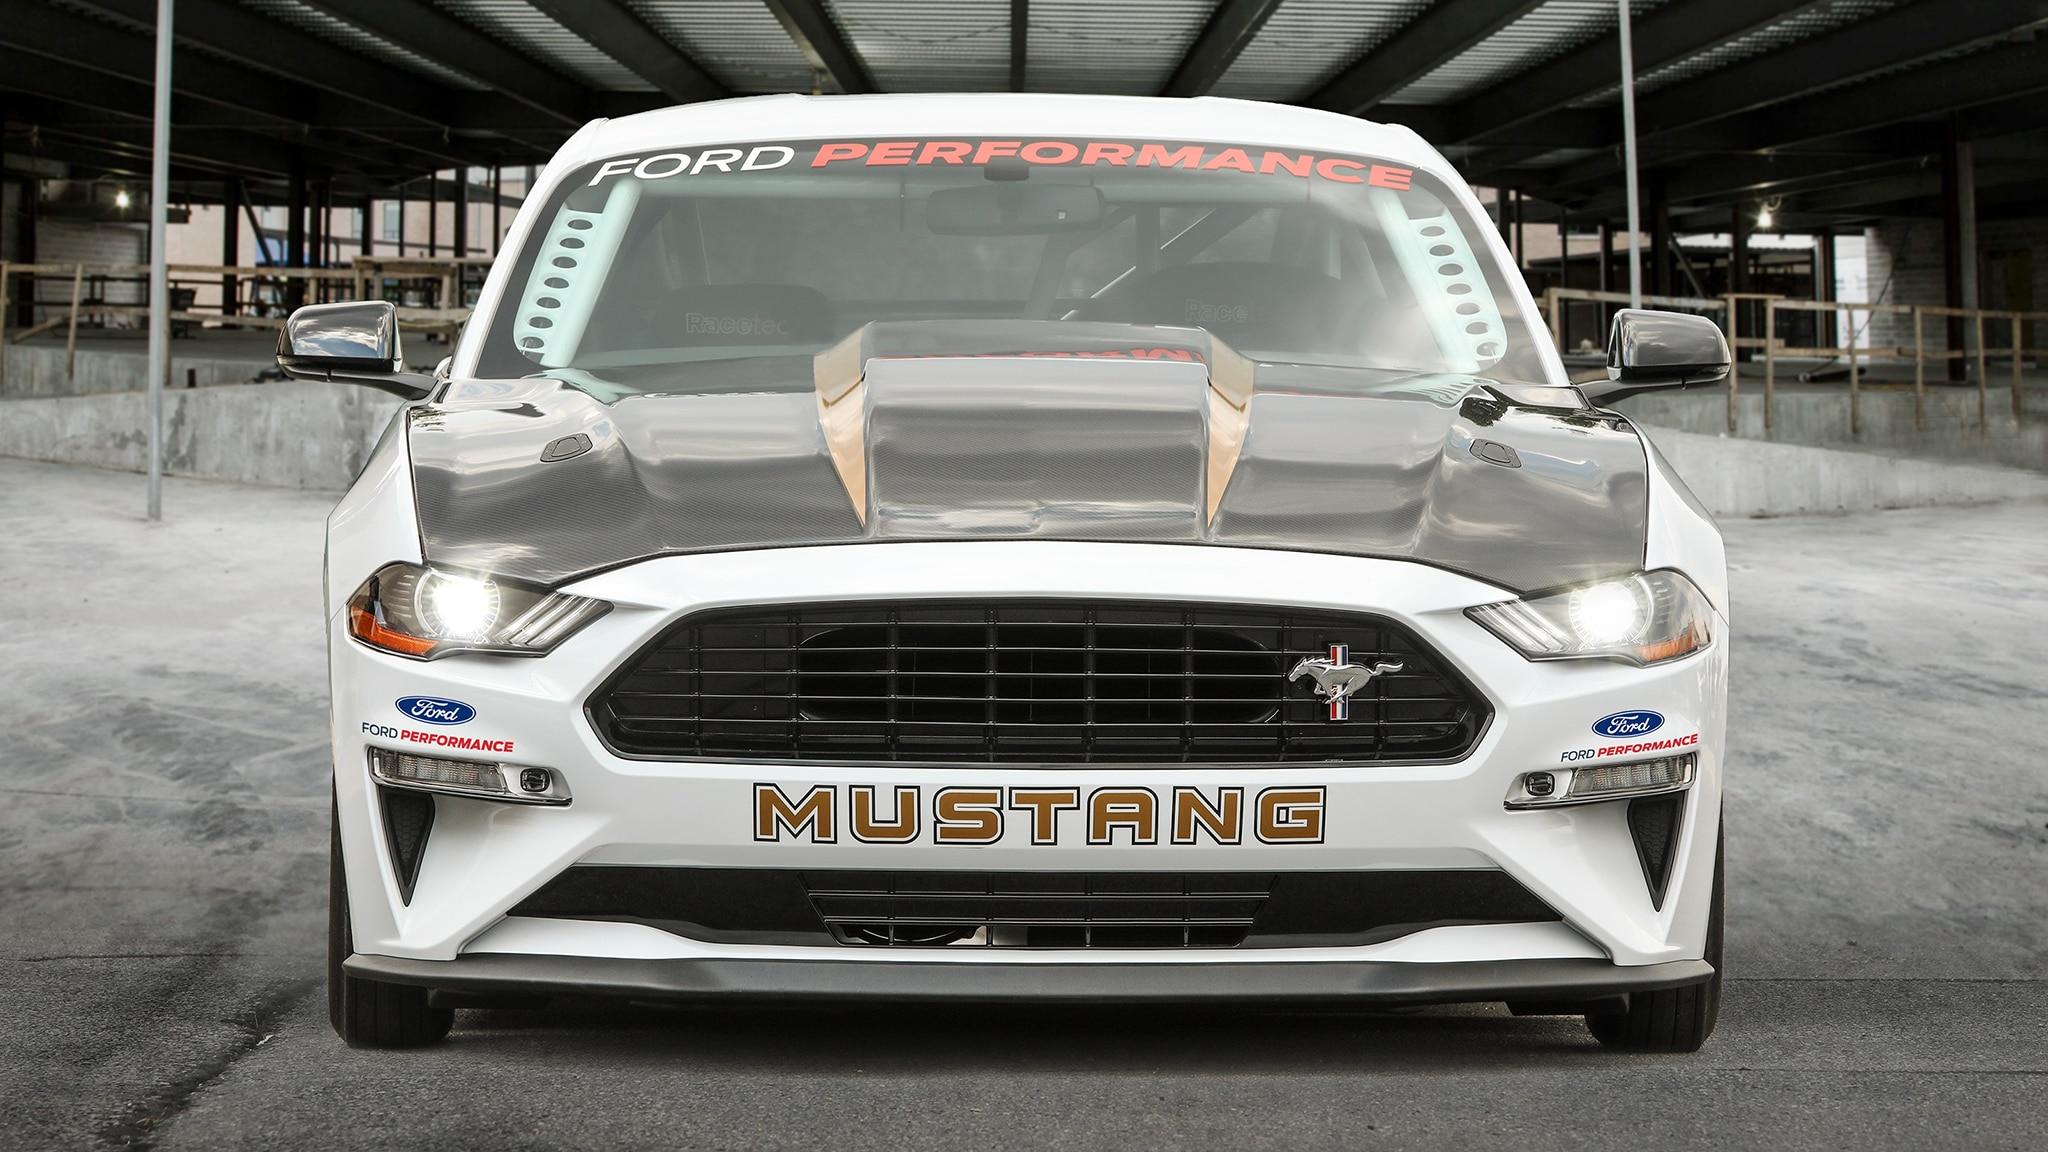 Ford Mustang Cobra Jet to cost $130,000